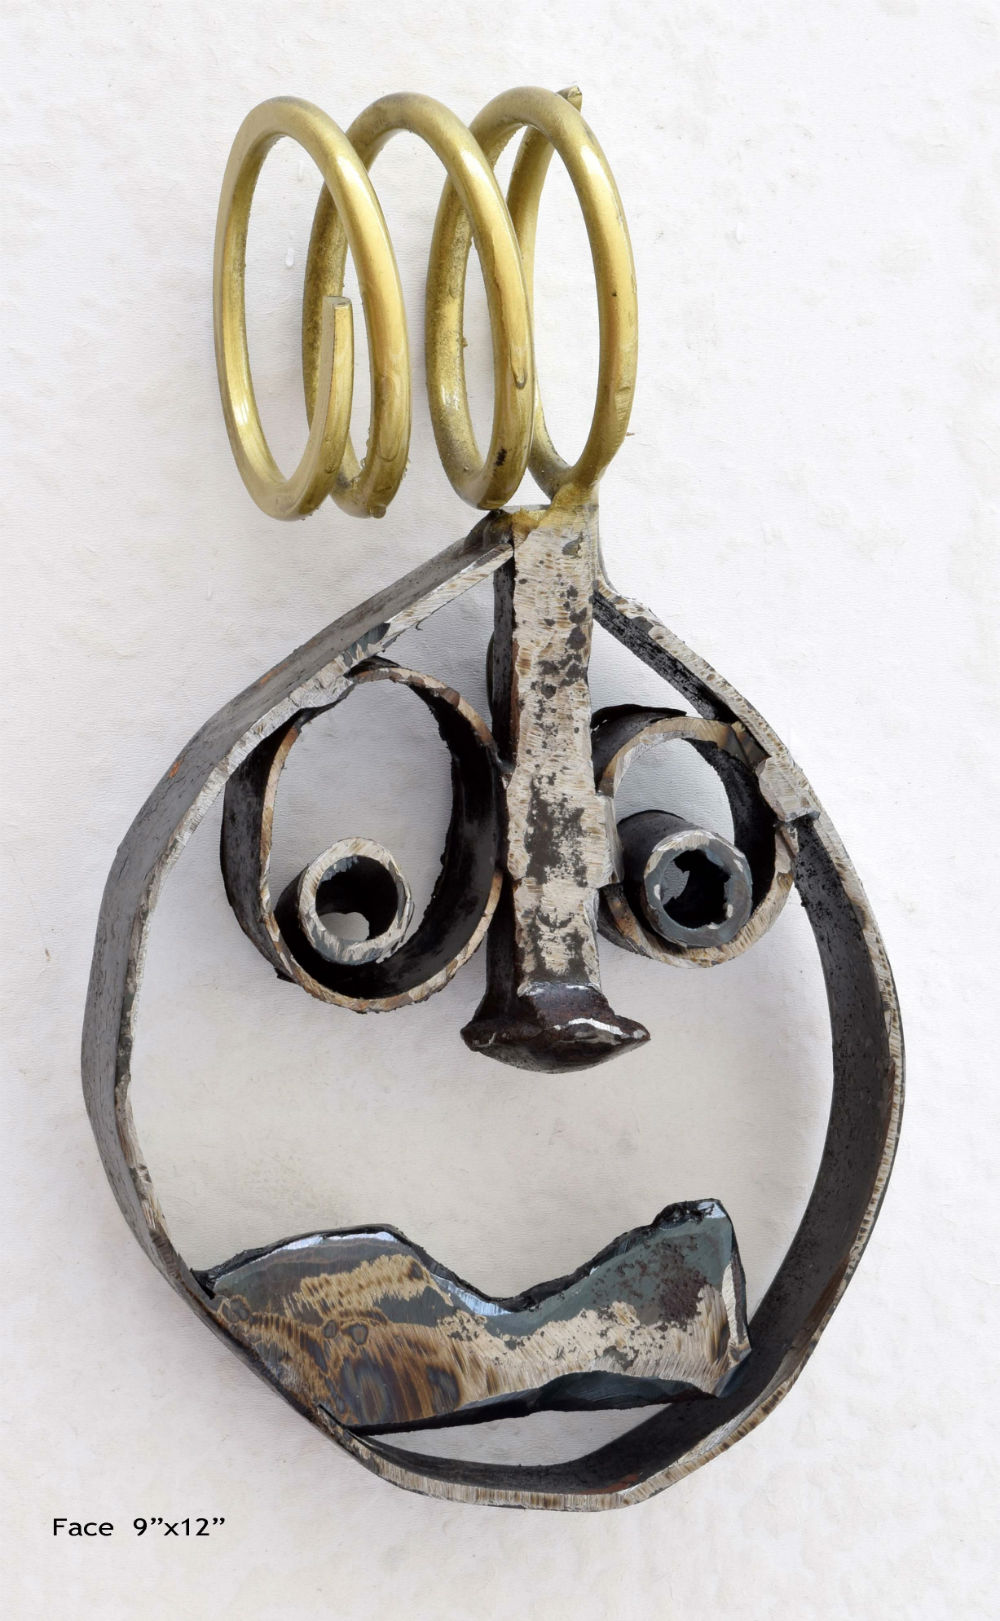 Walden7_opt.jpg